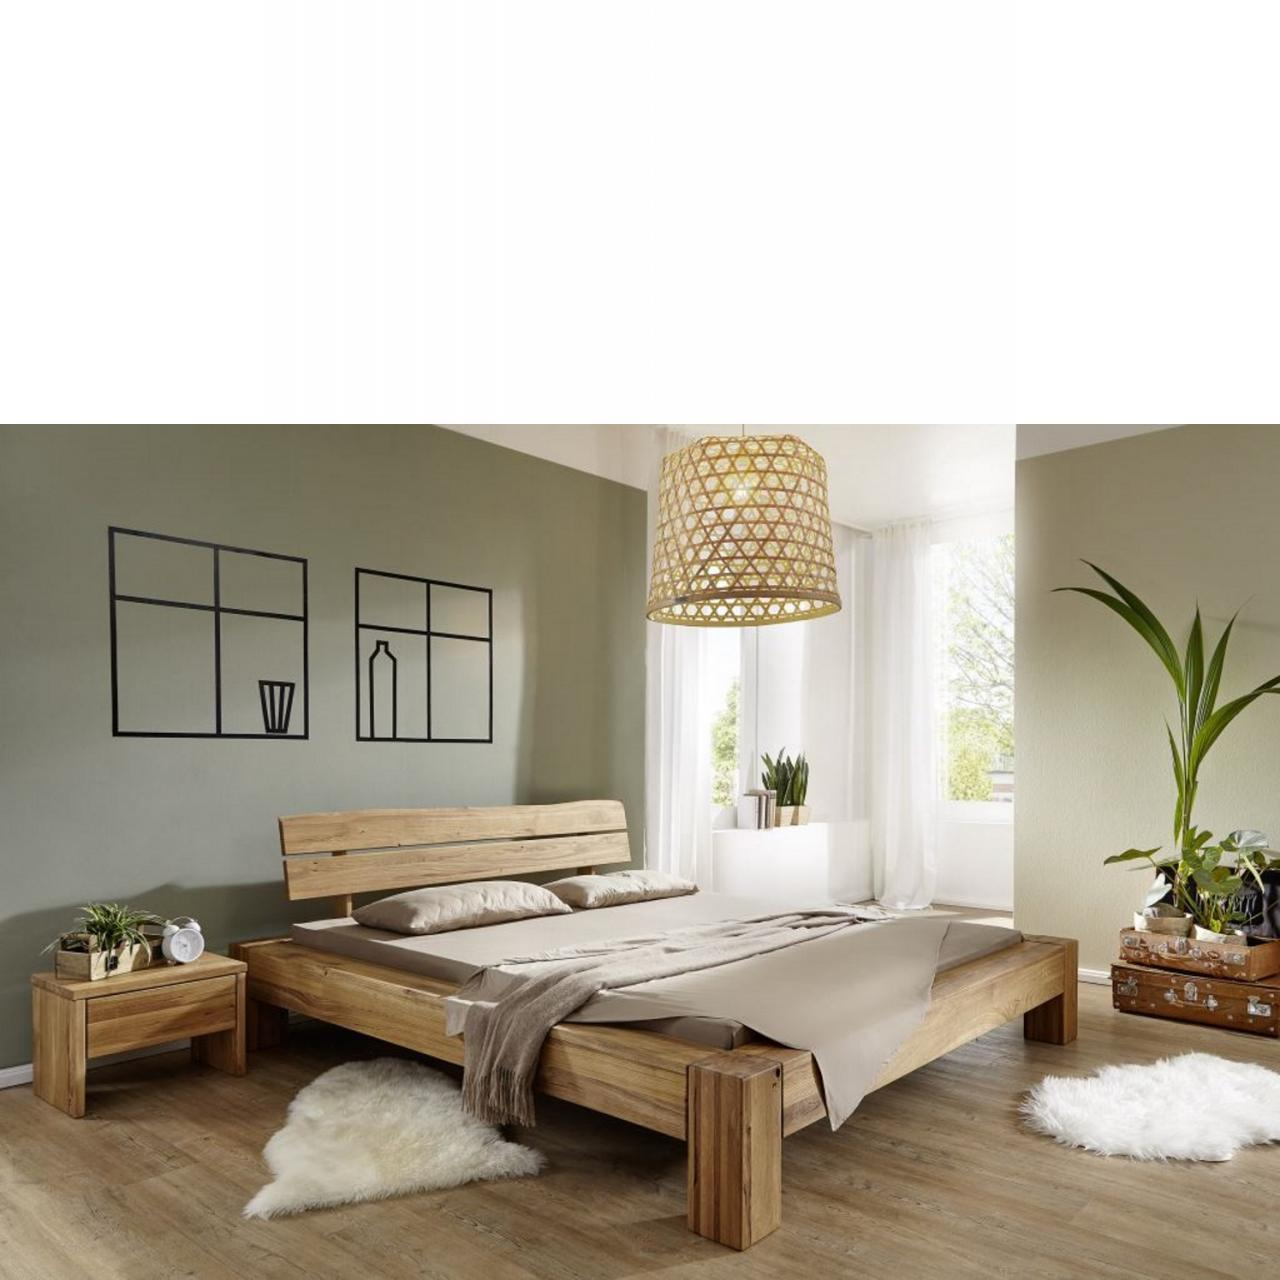 bett wildeiche massiv 140x200 cm mit kopfteil. Black Bedroom Furniture Sets. Home Design Ideas